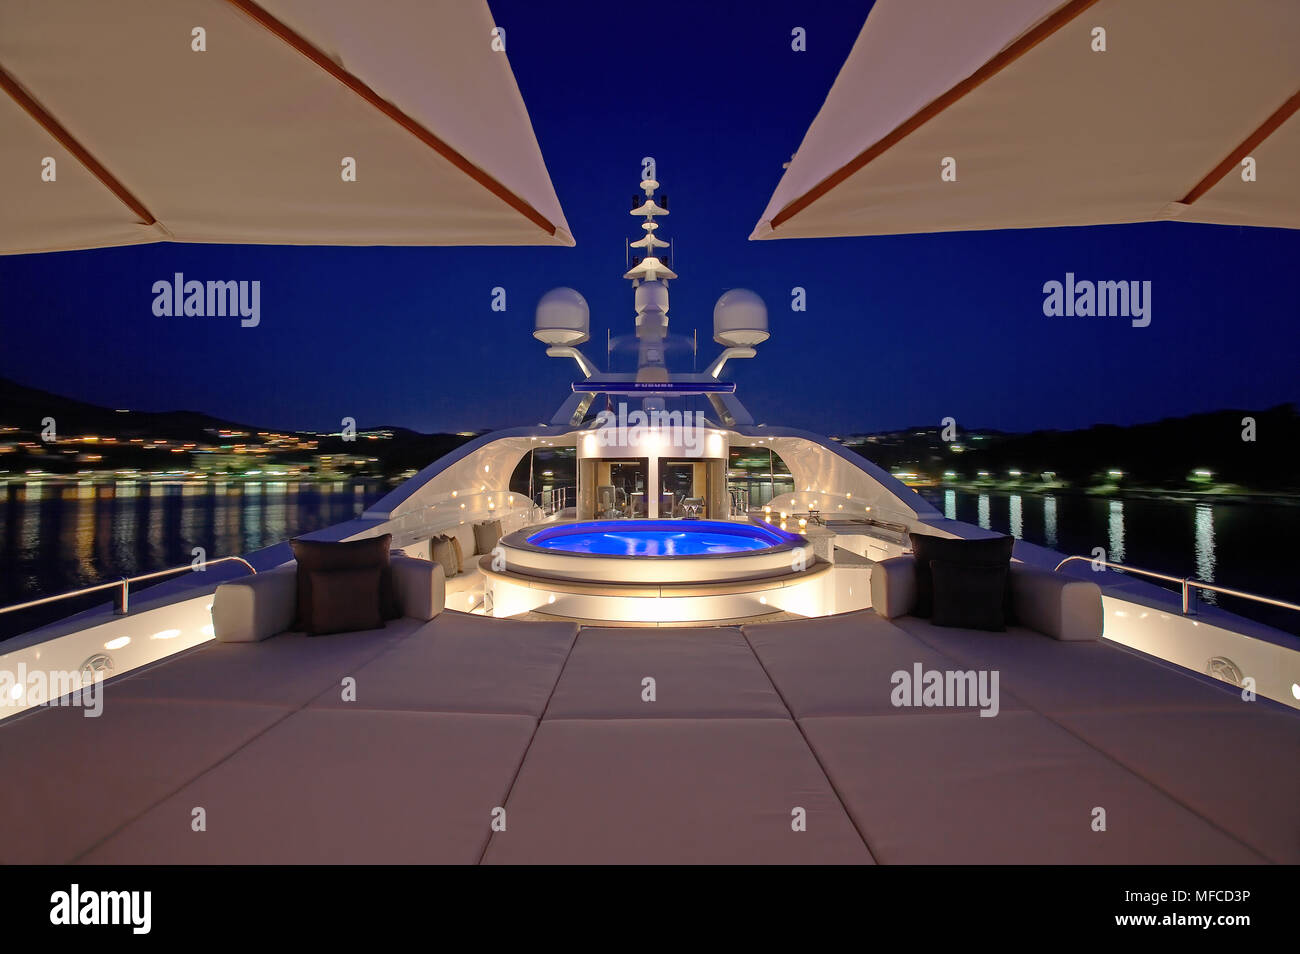 Superyacht sundeck with jacuzzi at night - Stock Image